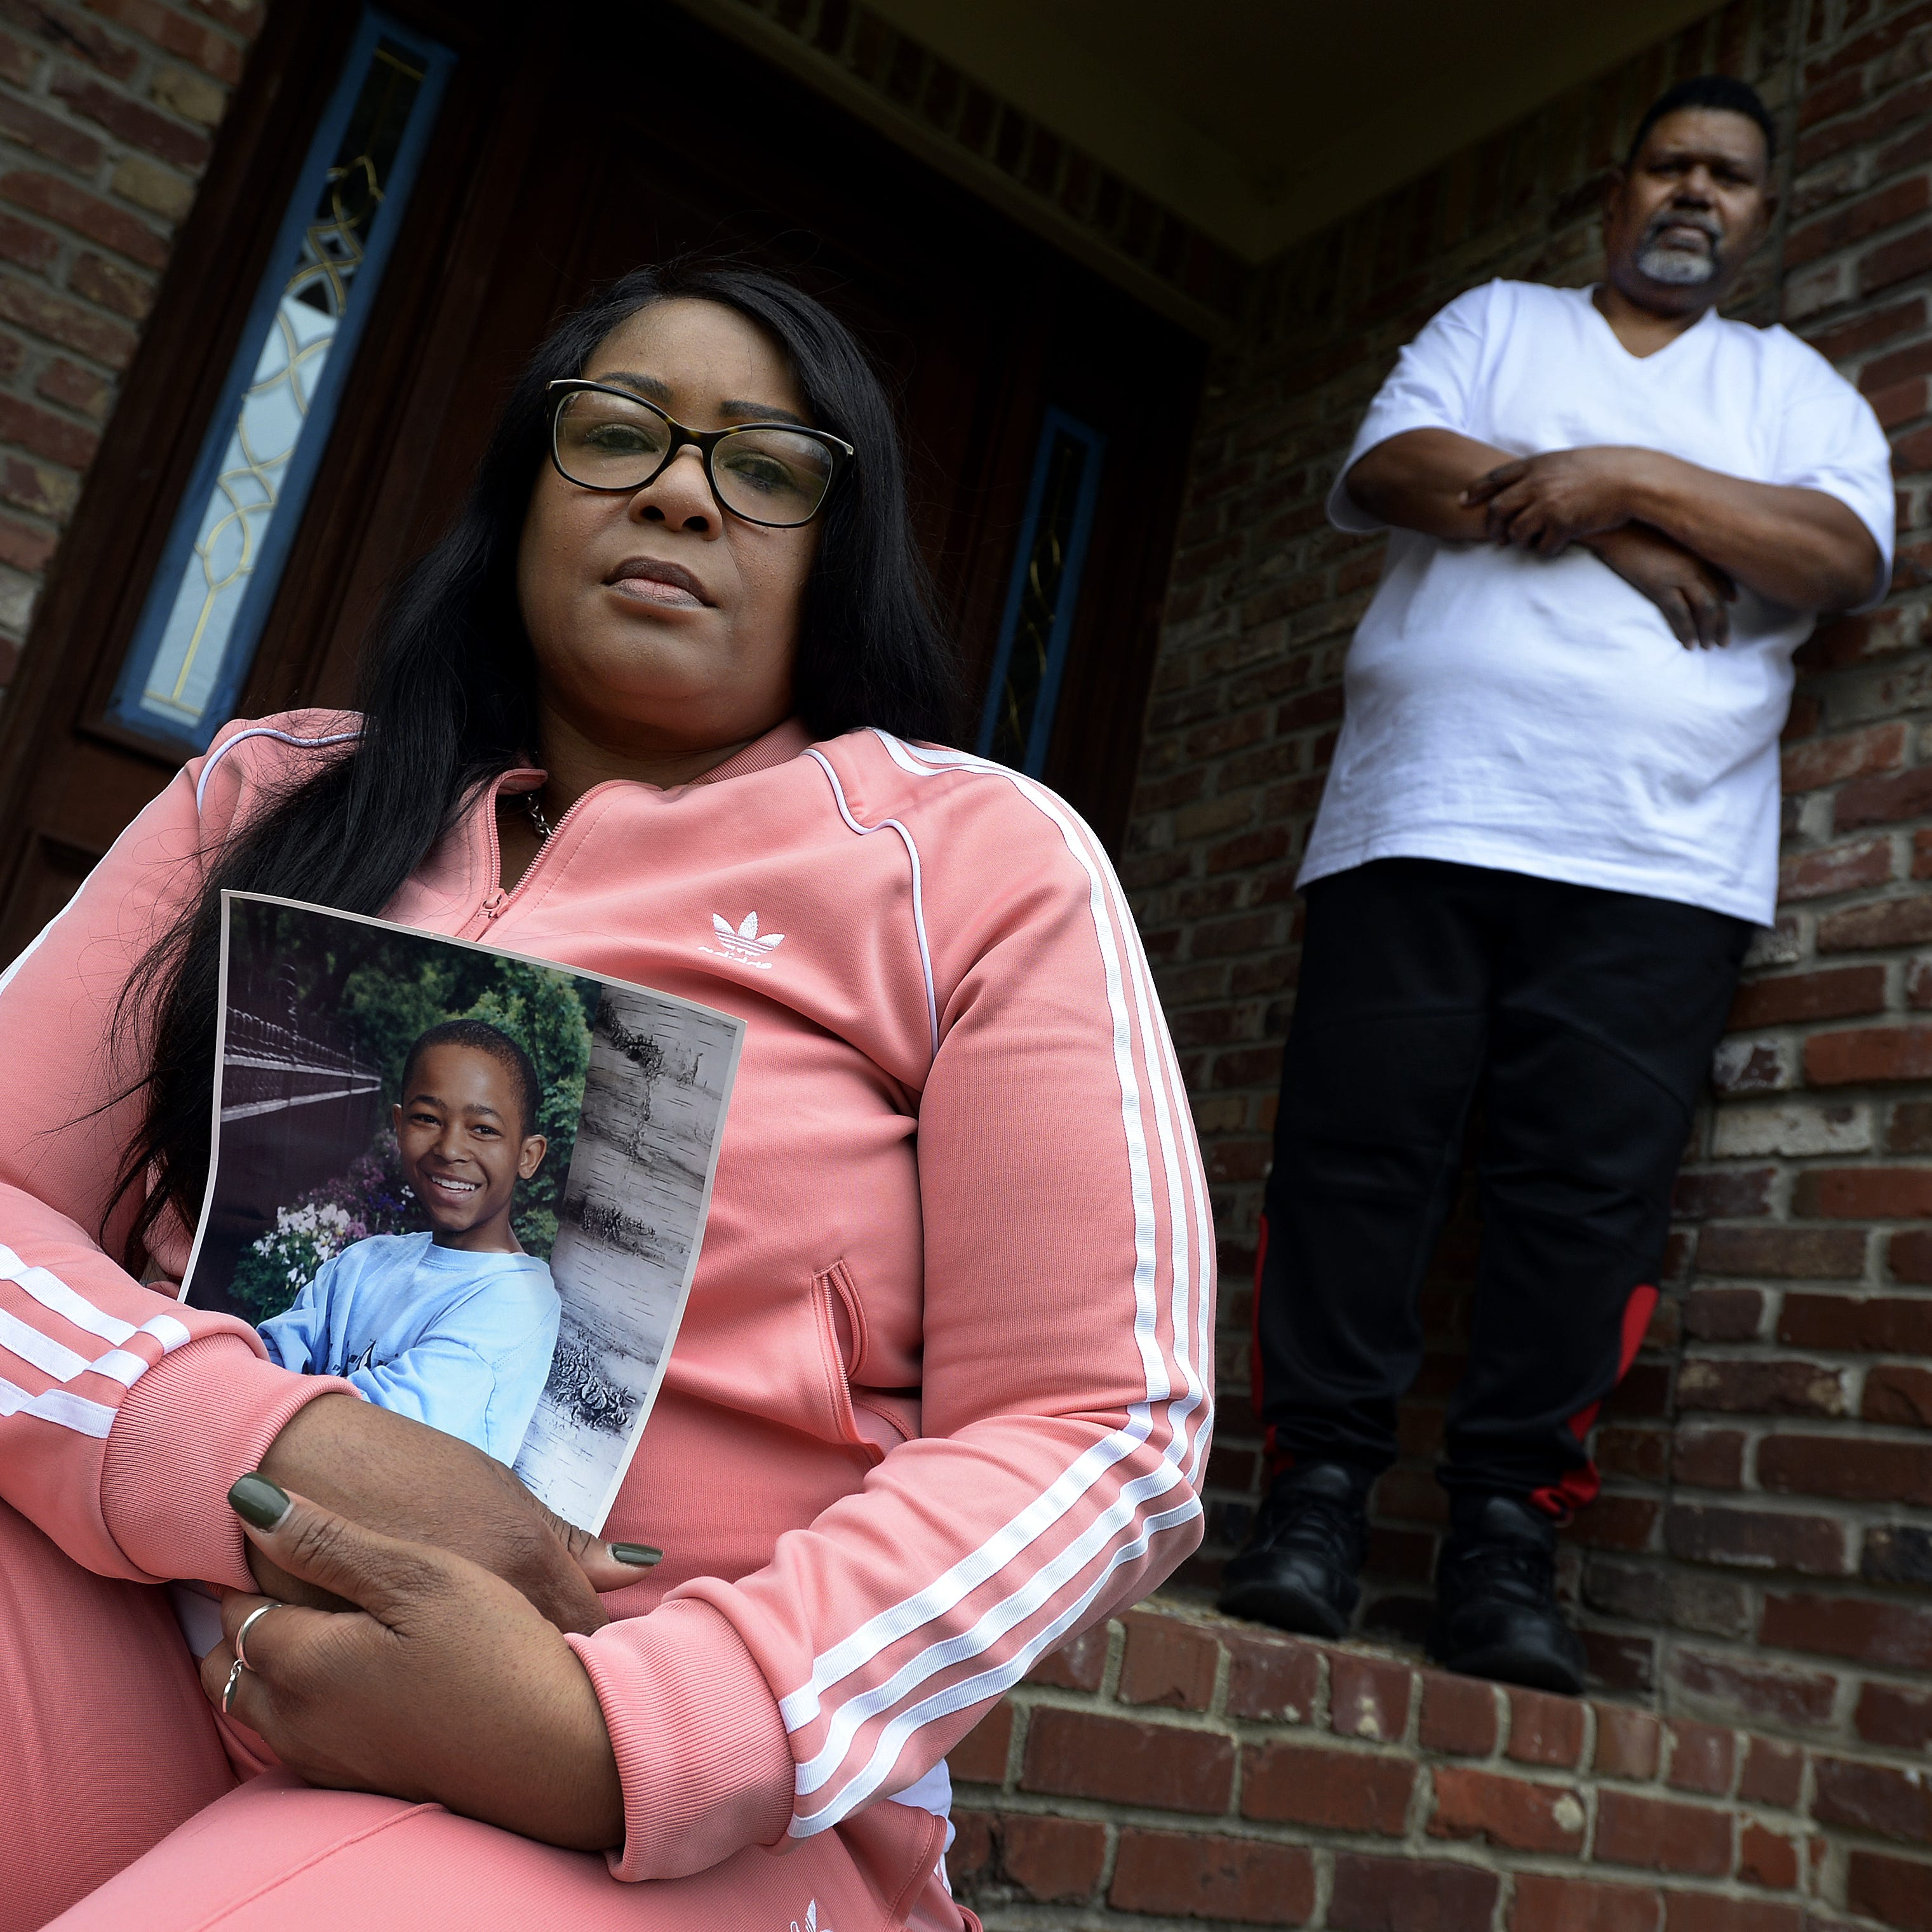 Special report: In Tennessee, 185 people are serving life for crimes committed as teens